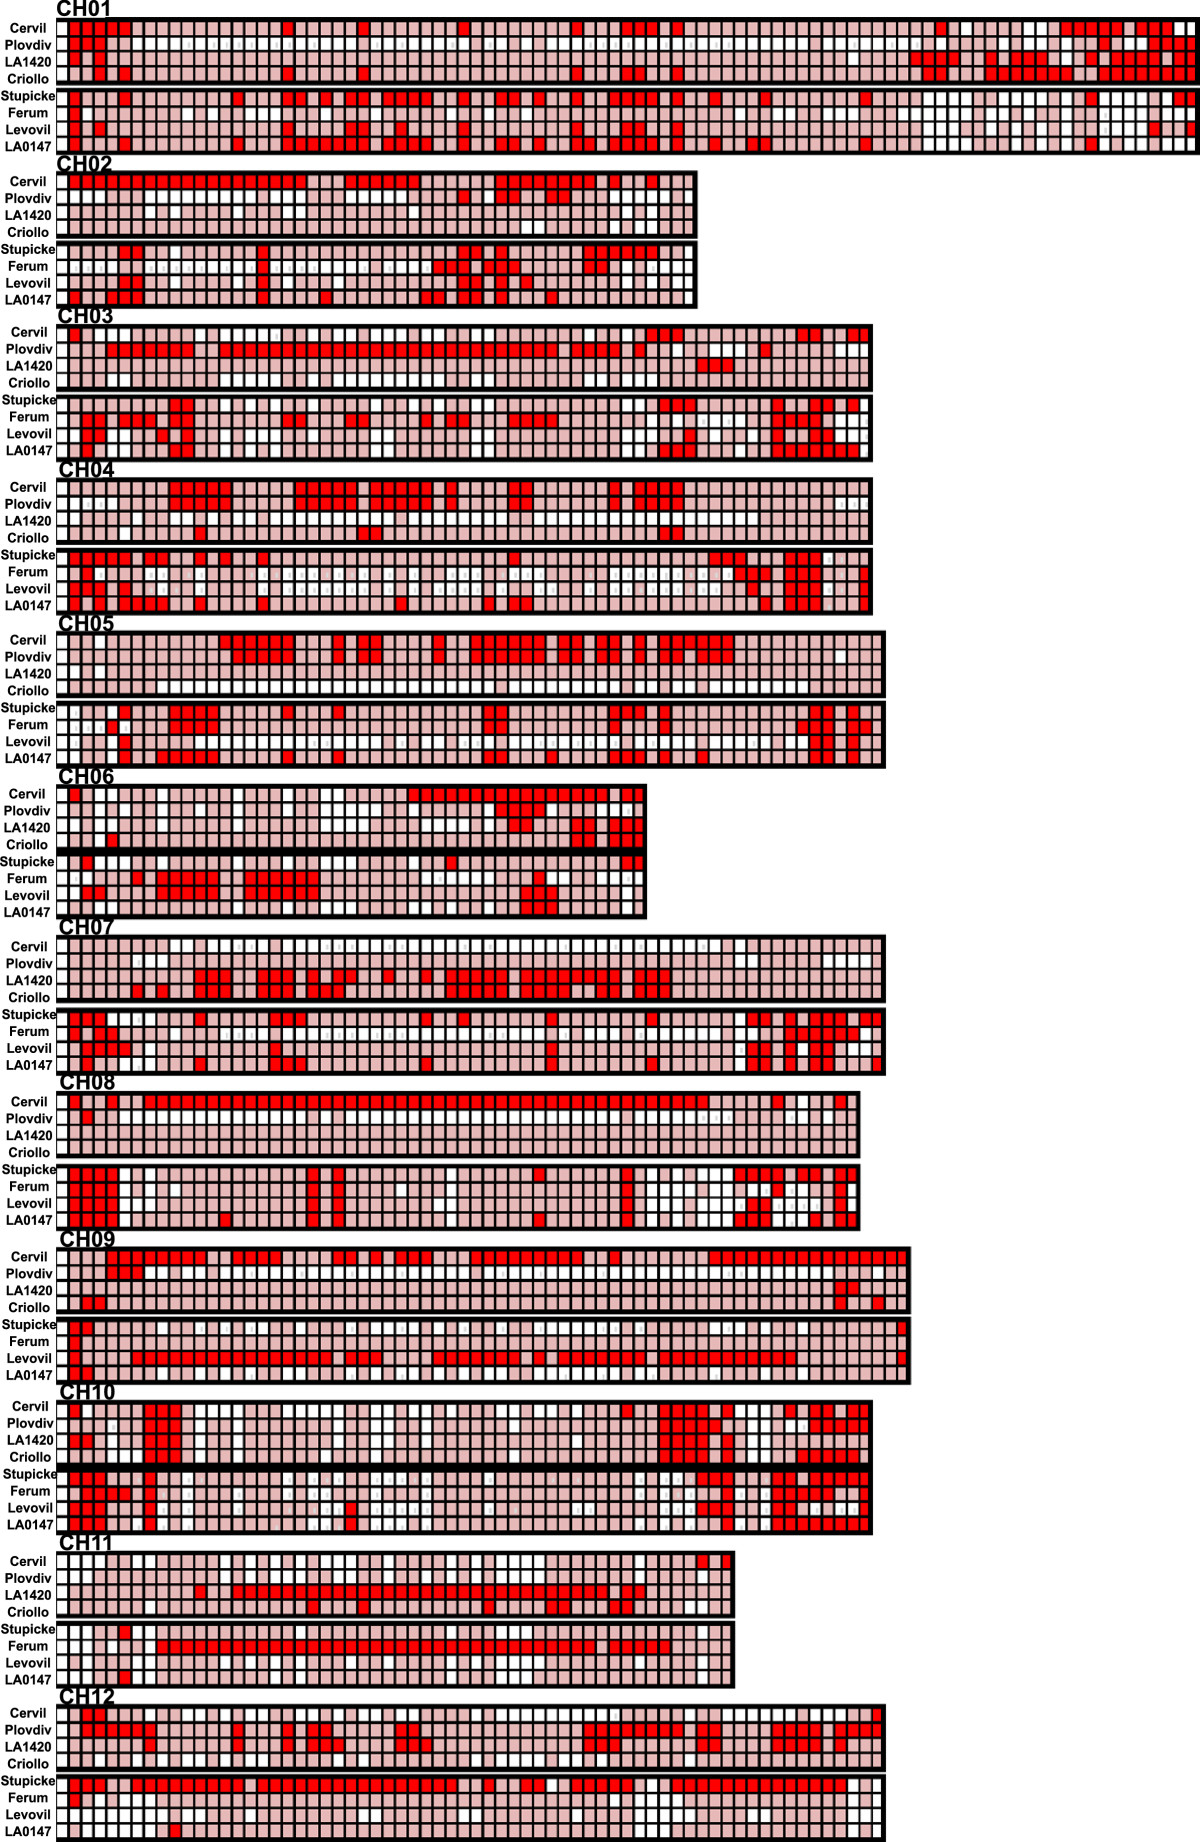 https://static-content.springer.com/image/art%3A10.1186%2F1471-2164-14-791/MediaObjects/12864_2013_Article_5531_Fig7_HTML.jpg